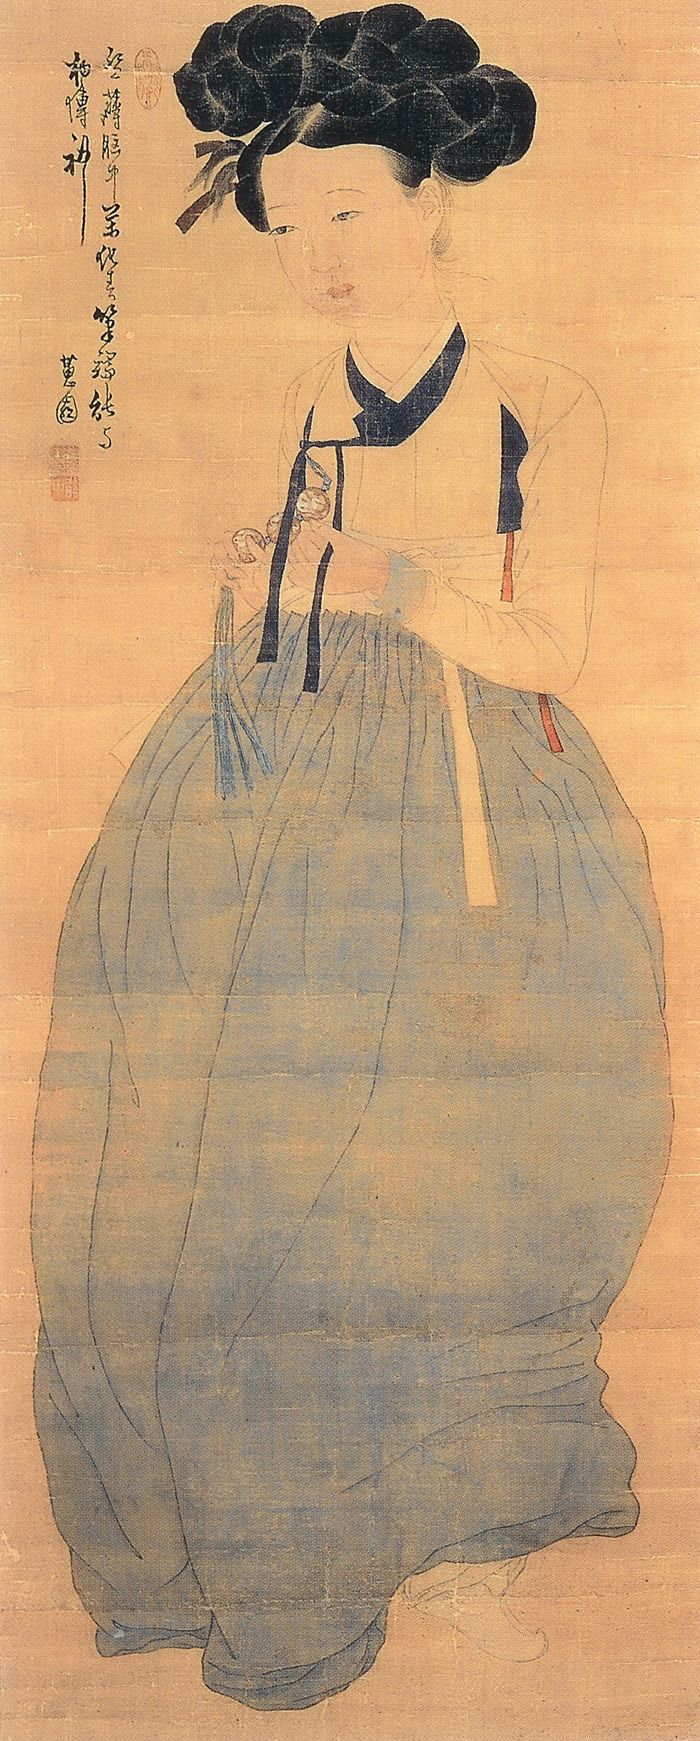 Miindo | Portrait Of A Beauty By Corean Artist Shin Yunbok Painting on silk. Depicts the standard of traditional beauty in the Joseon Dynasty (1392-1910), Corea. Realistic details of the Hanbok are notable.